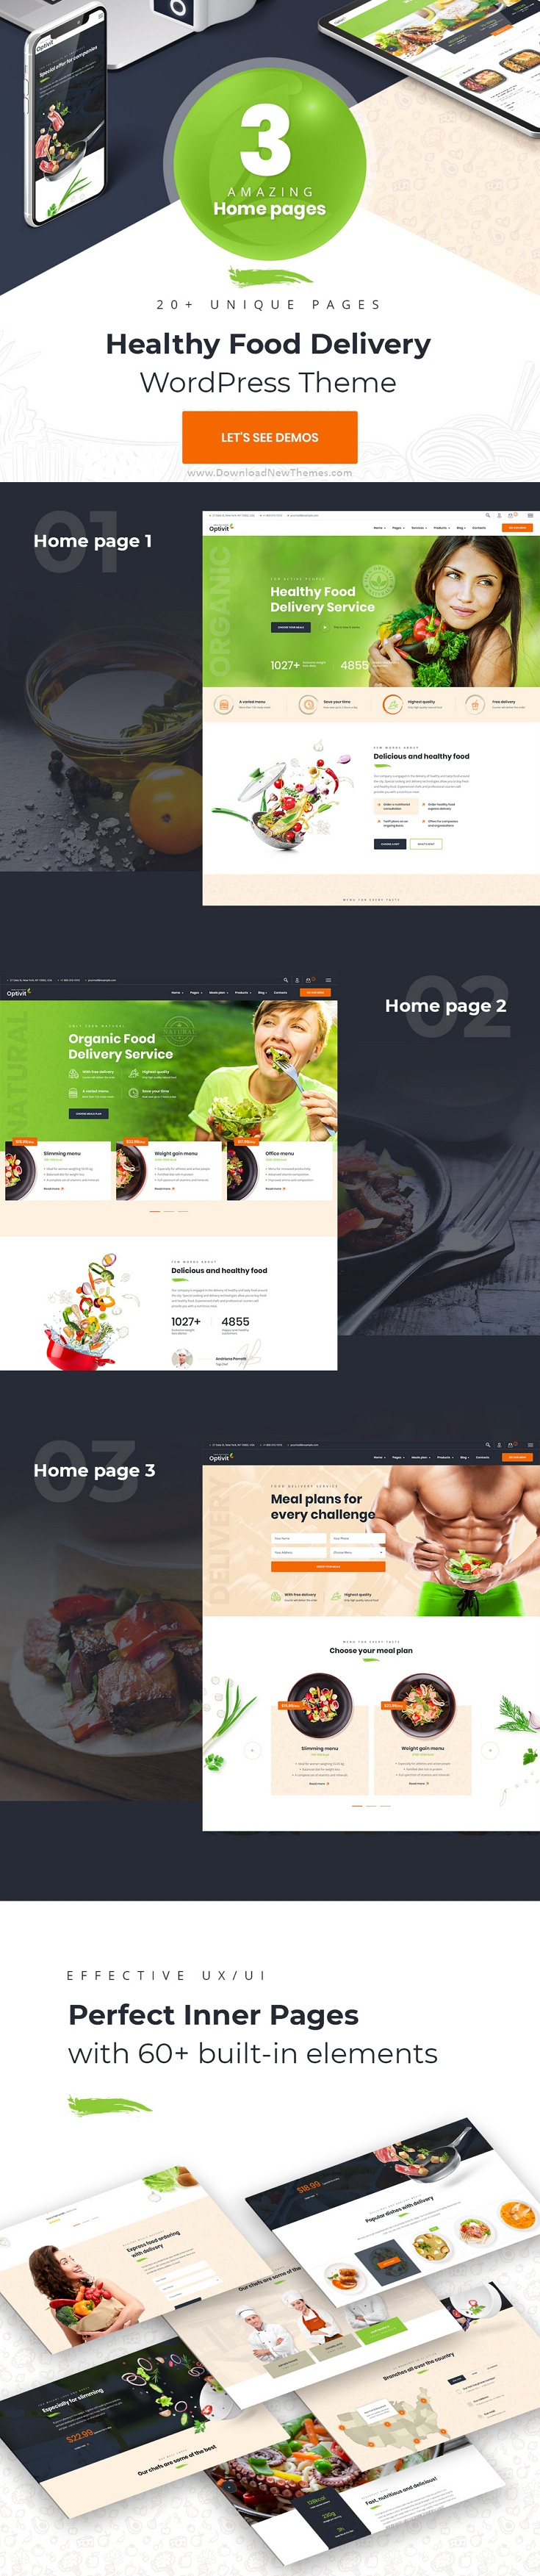 Healthy Food Delivery WordPress Theme